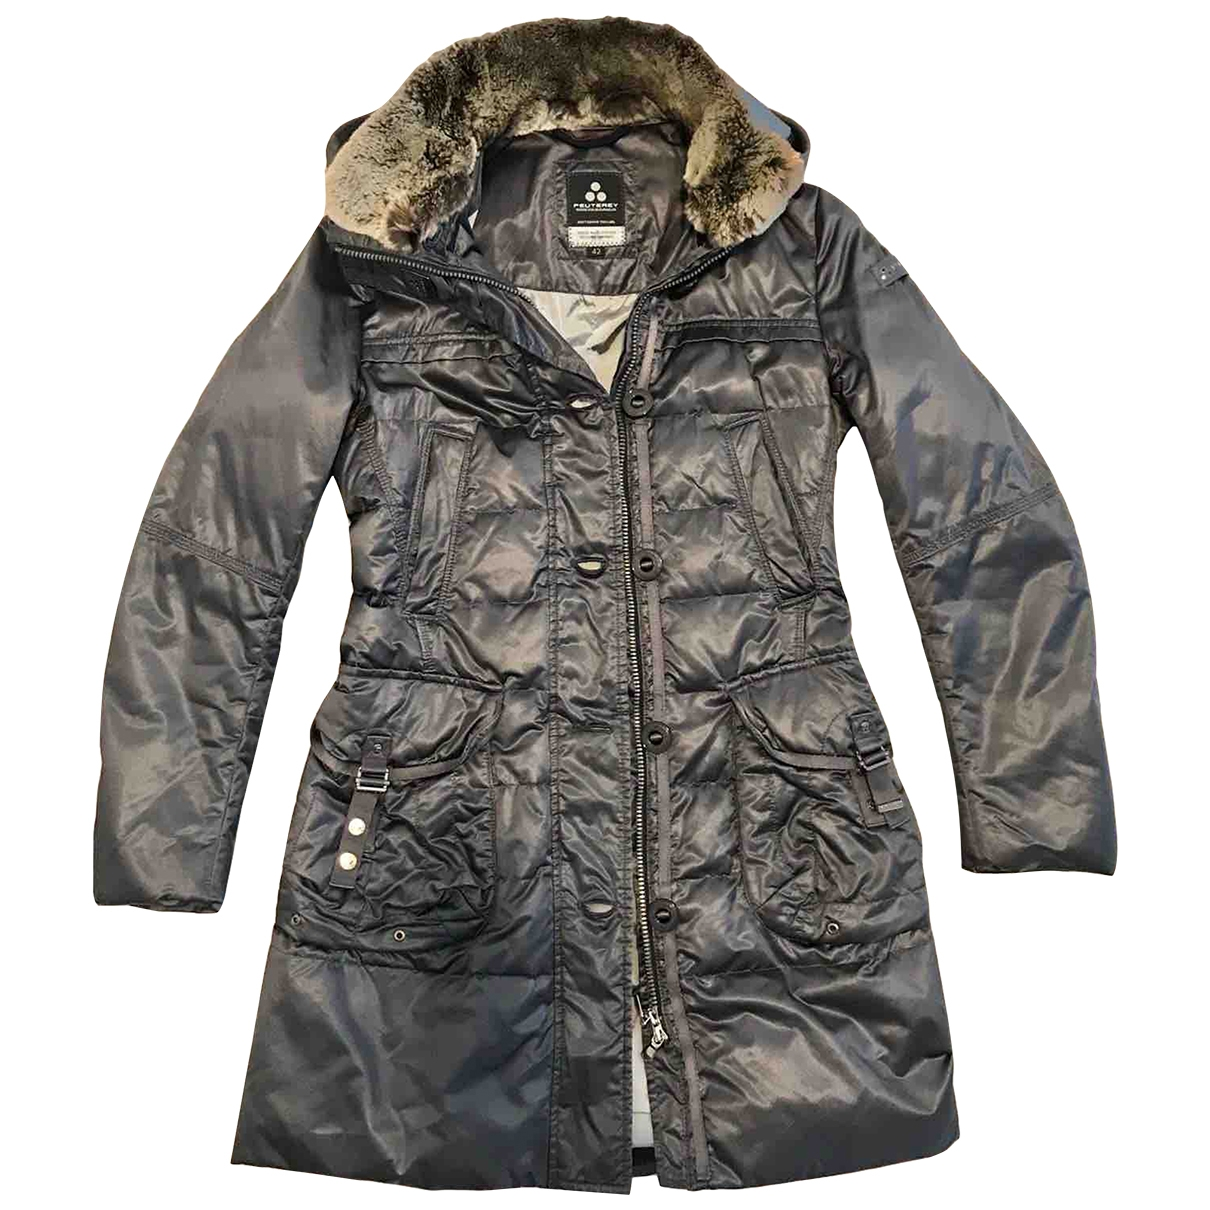 Peuterey \N Anthracite jacket for Women 42 IT